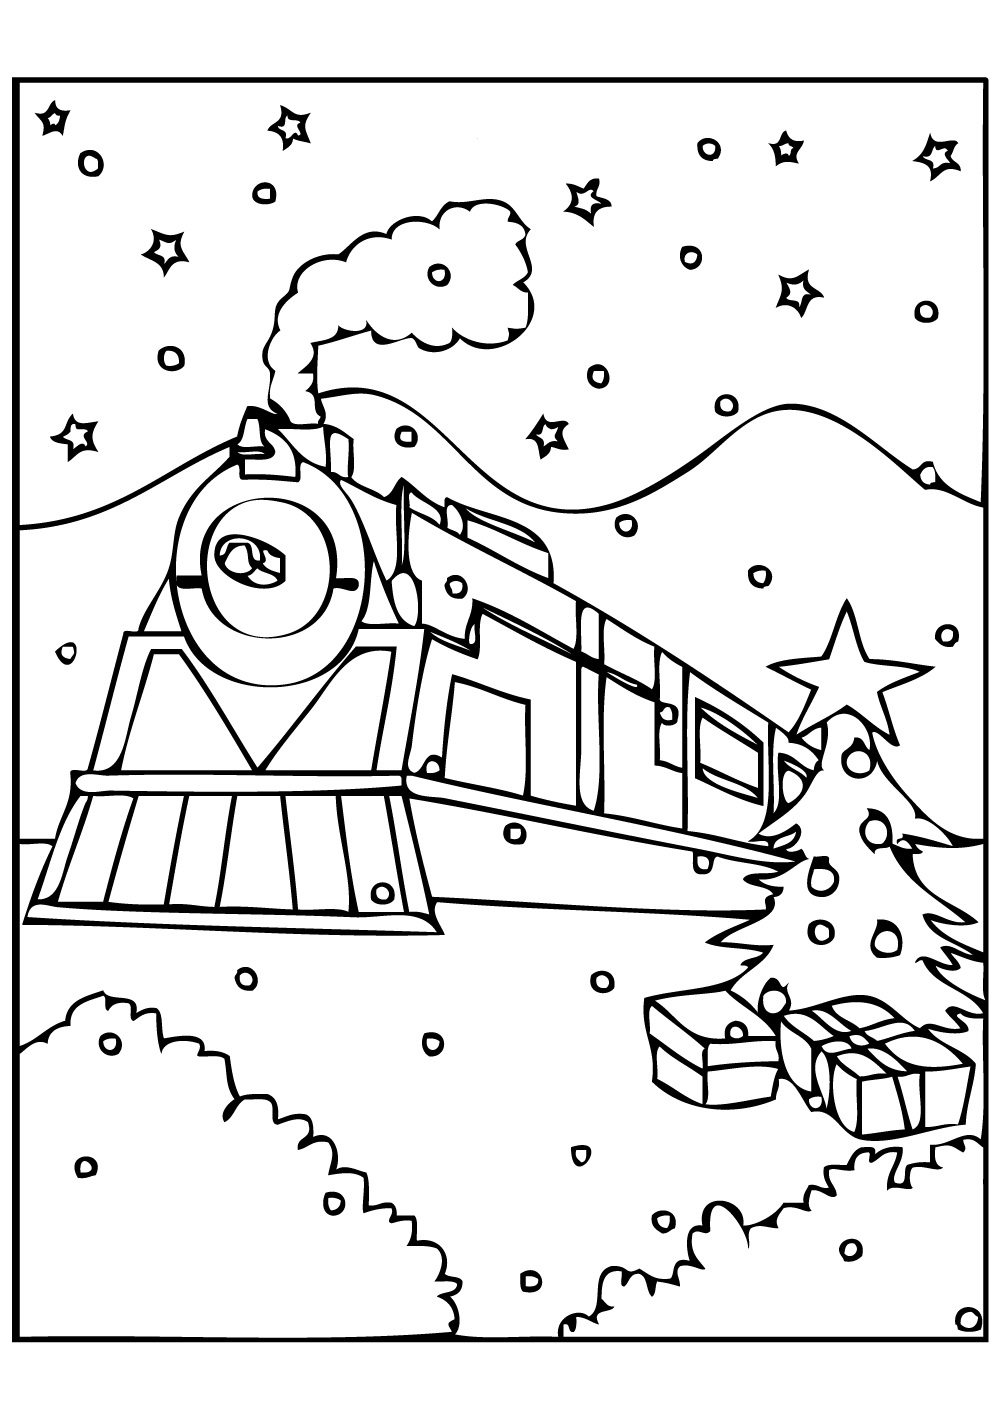 Ticket drawing template at getdrawings free for personal use 1000x1415 polar express ticket coloring page polar express train ticket maxwellsz